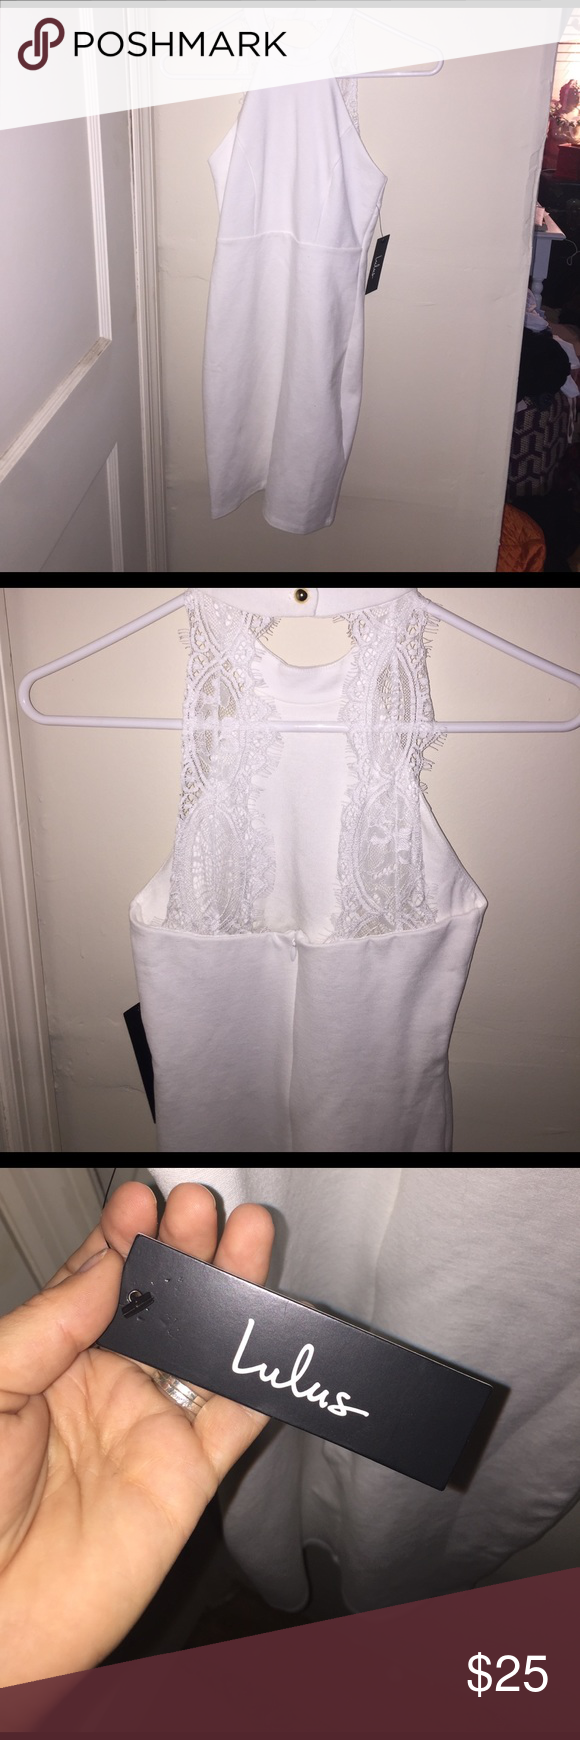 XS LuLus White Dress XS LuLus dress- Never worn, bodycon white dress. Lulu's Dresses Mini